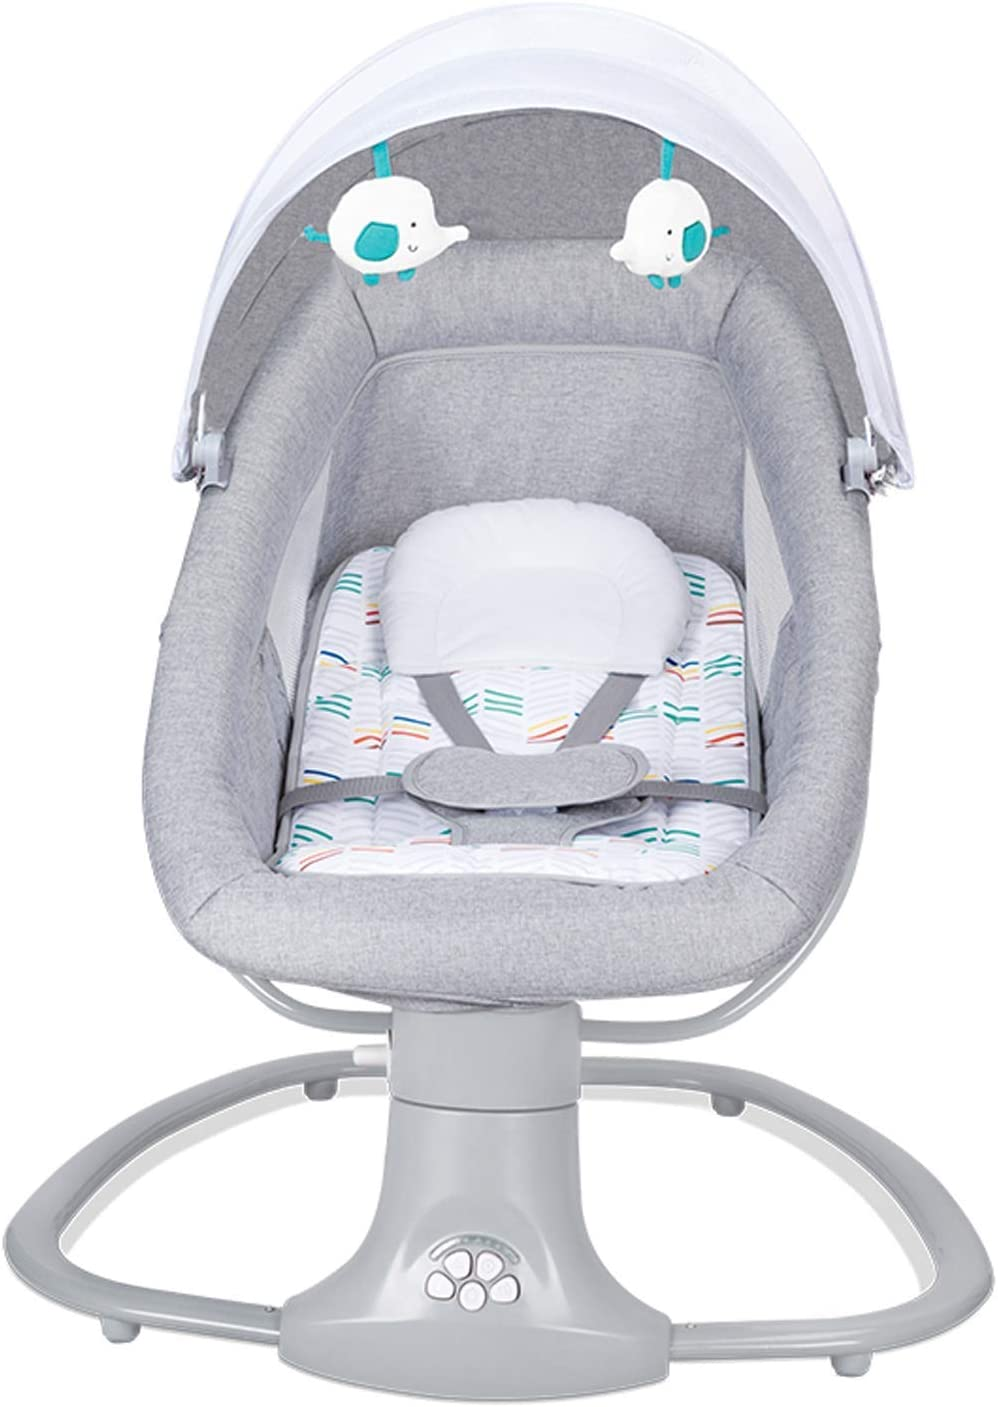 Baby Electric Rocking Chair Newborns Sleeping Cradle Bed Child comfort chair reclining chair for baby 0-3 years old enlarge